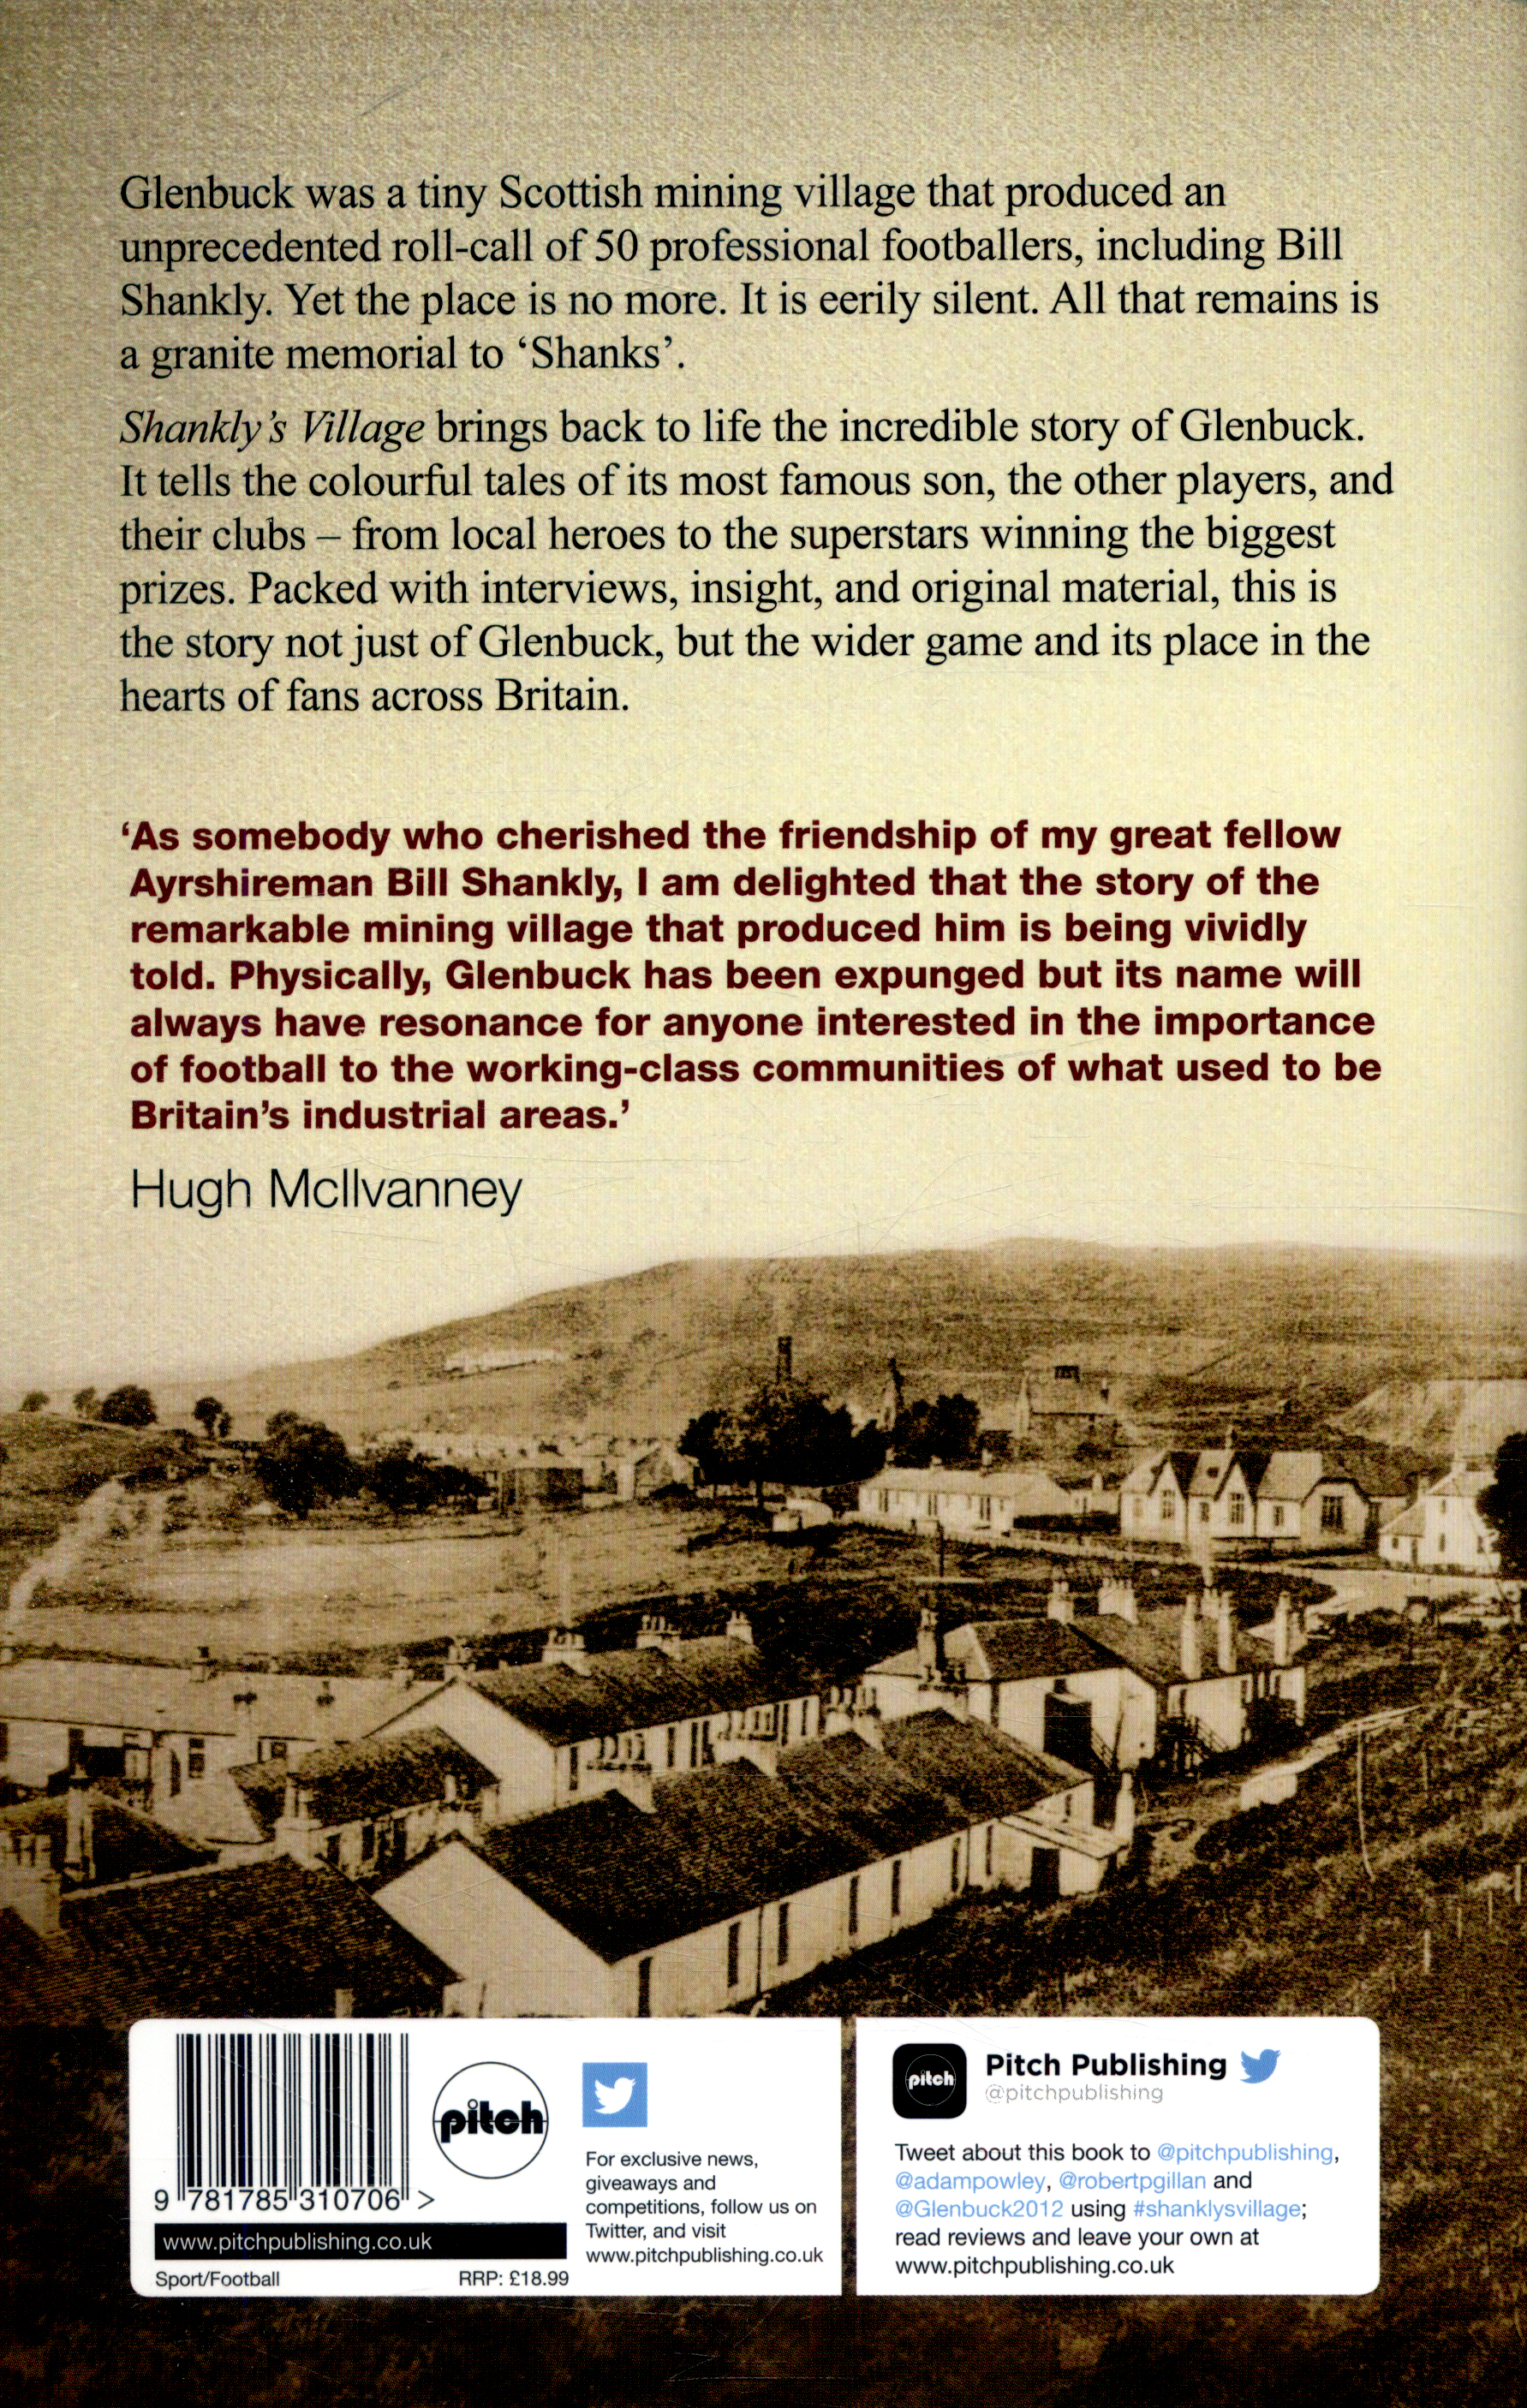 Shankly's village : the extraordinary life and times of Glenbuck and